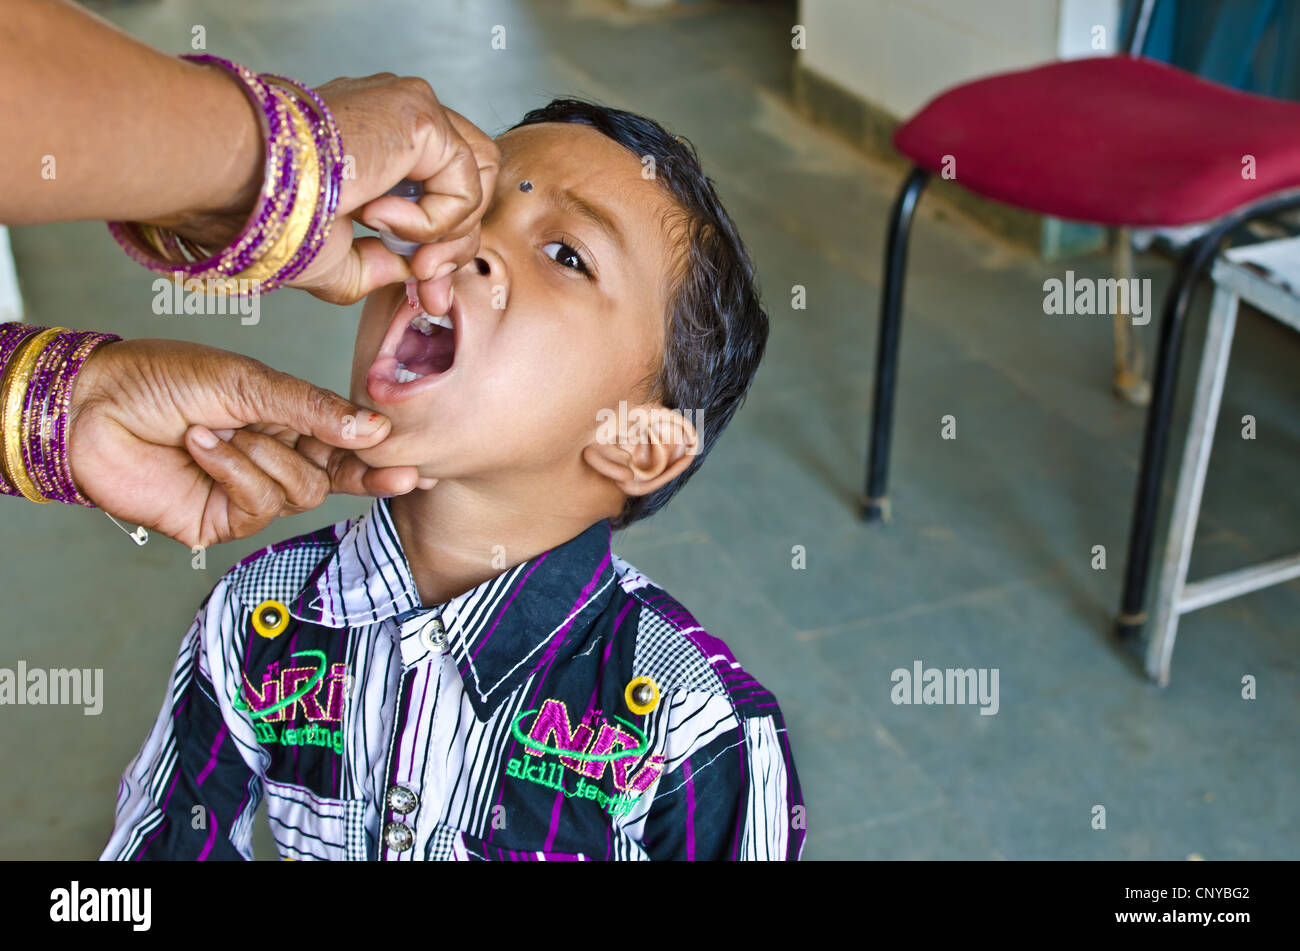 Oral polio vaccination - Stock Image